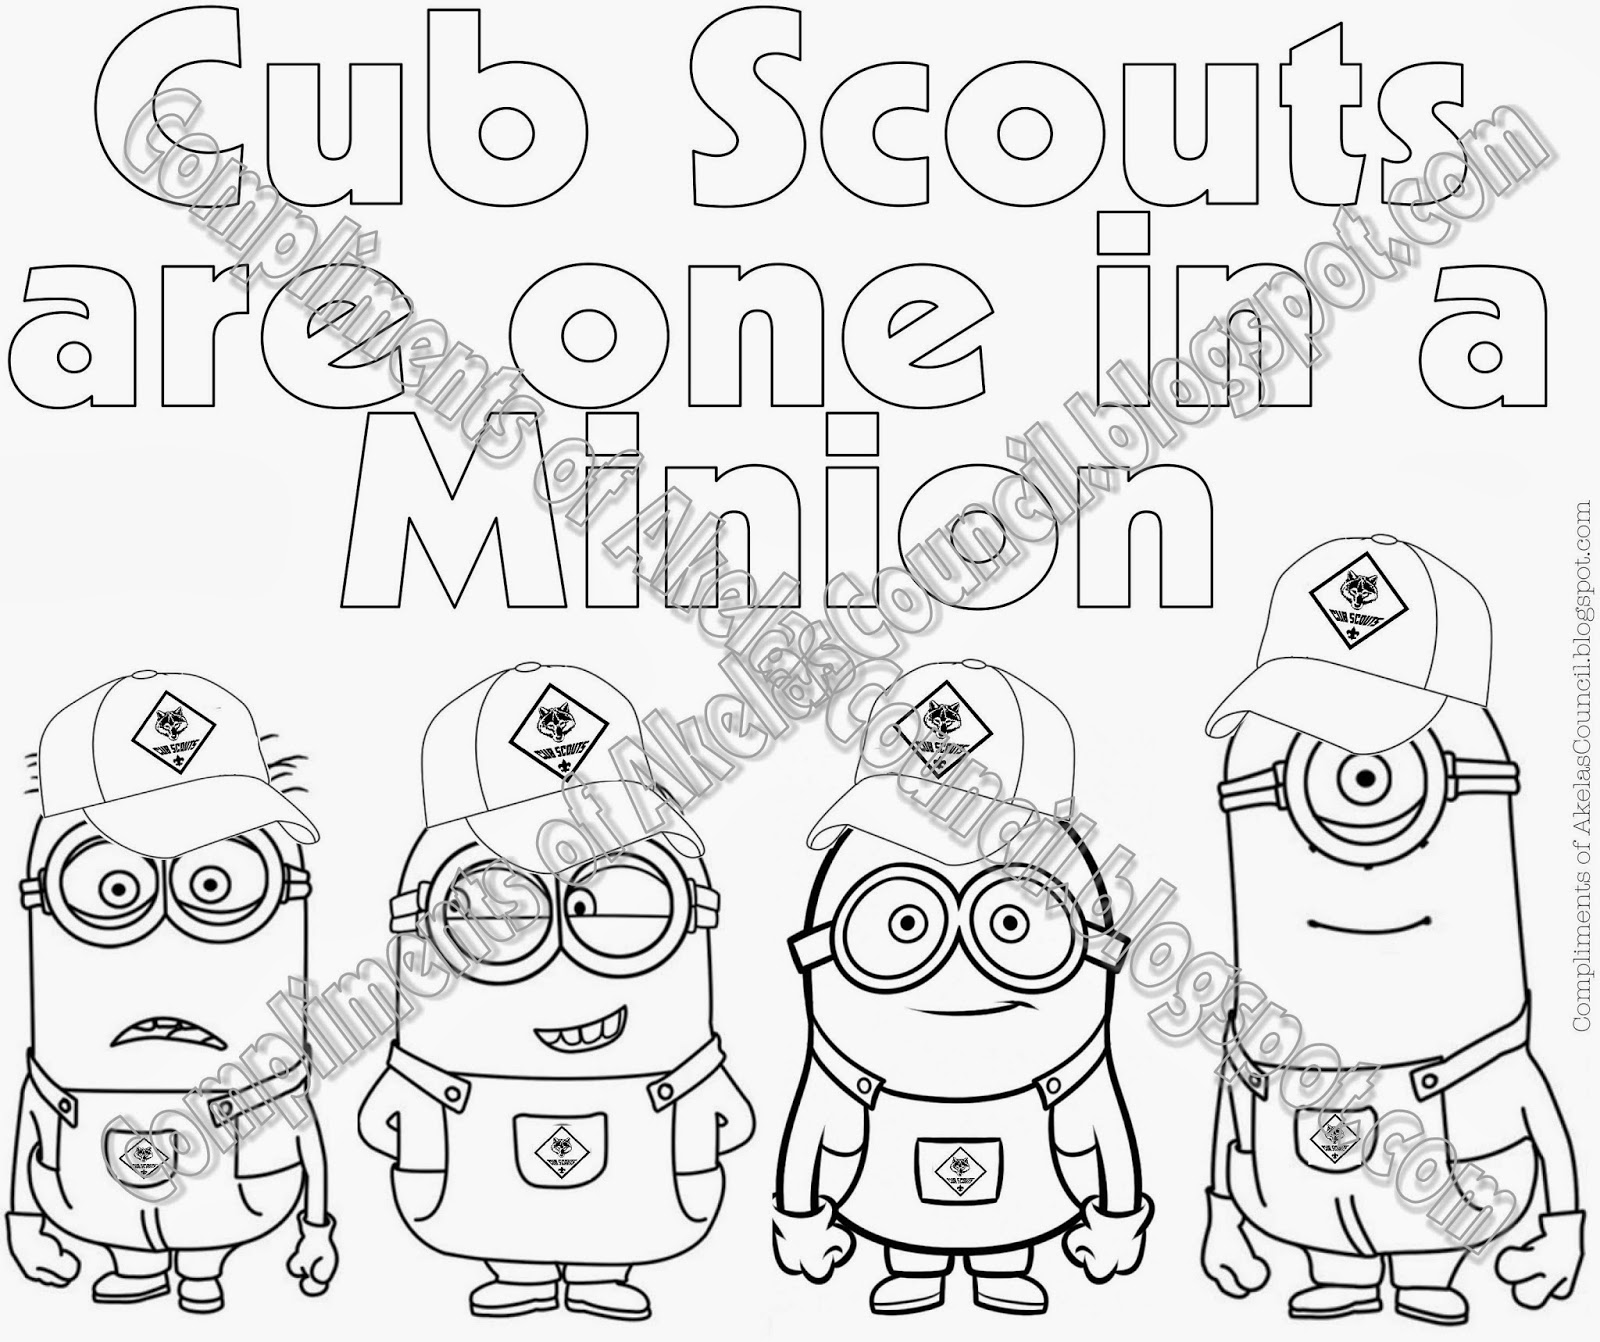 1600x1342 Compassion Coloring Page A Cub Scouting Core Value Ideas